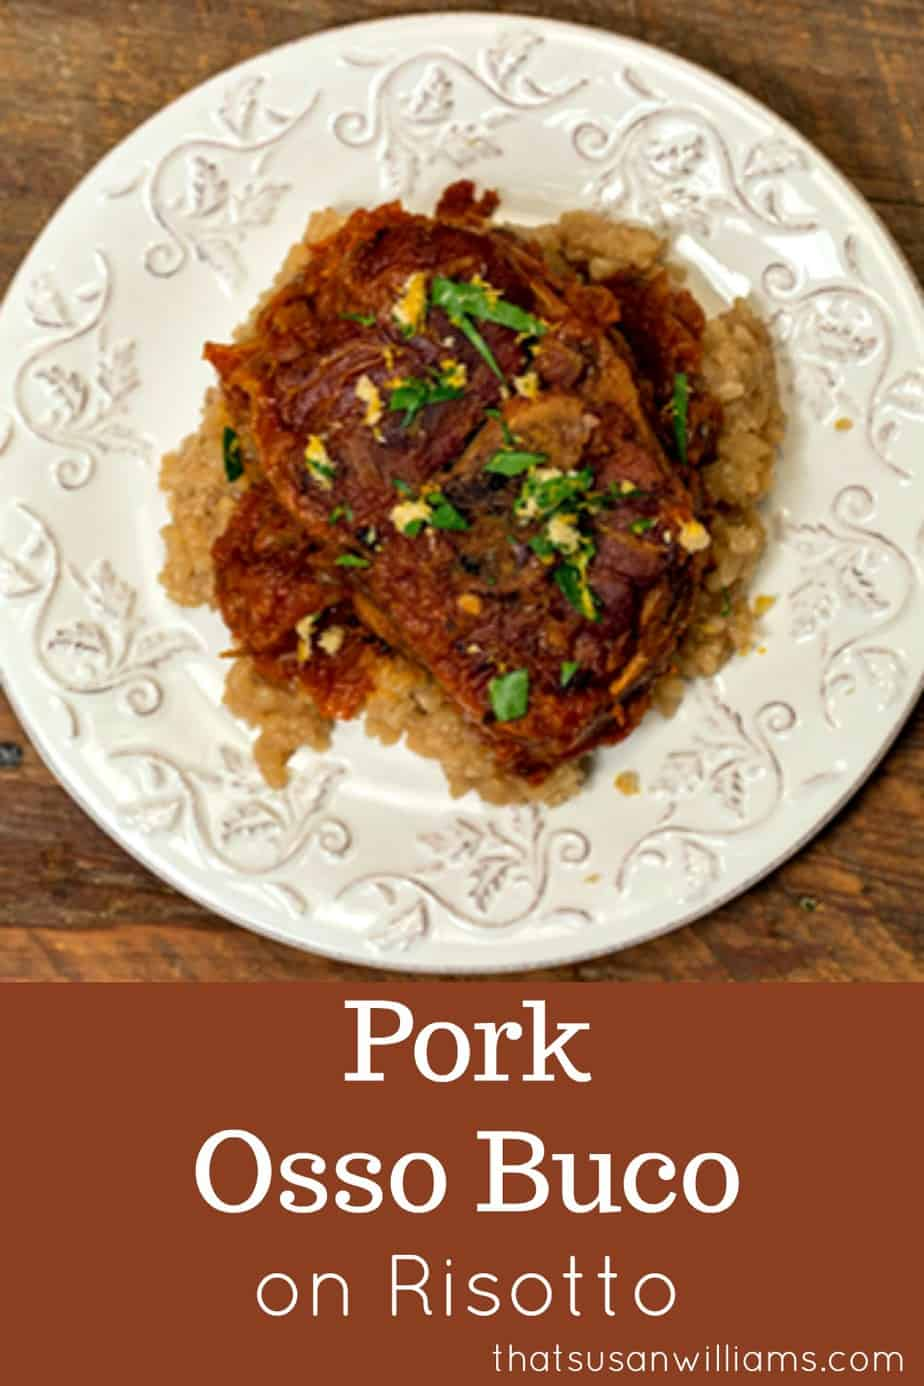 Pork Osso Buco is elegant comfort food. Braised pork shank bones, simmered in a delicious sauce, topped with a fresh gremolata, and served on risotto. #comfortfood #recipe #pork #braise